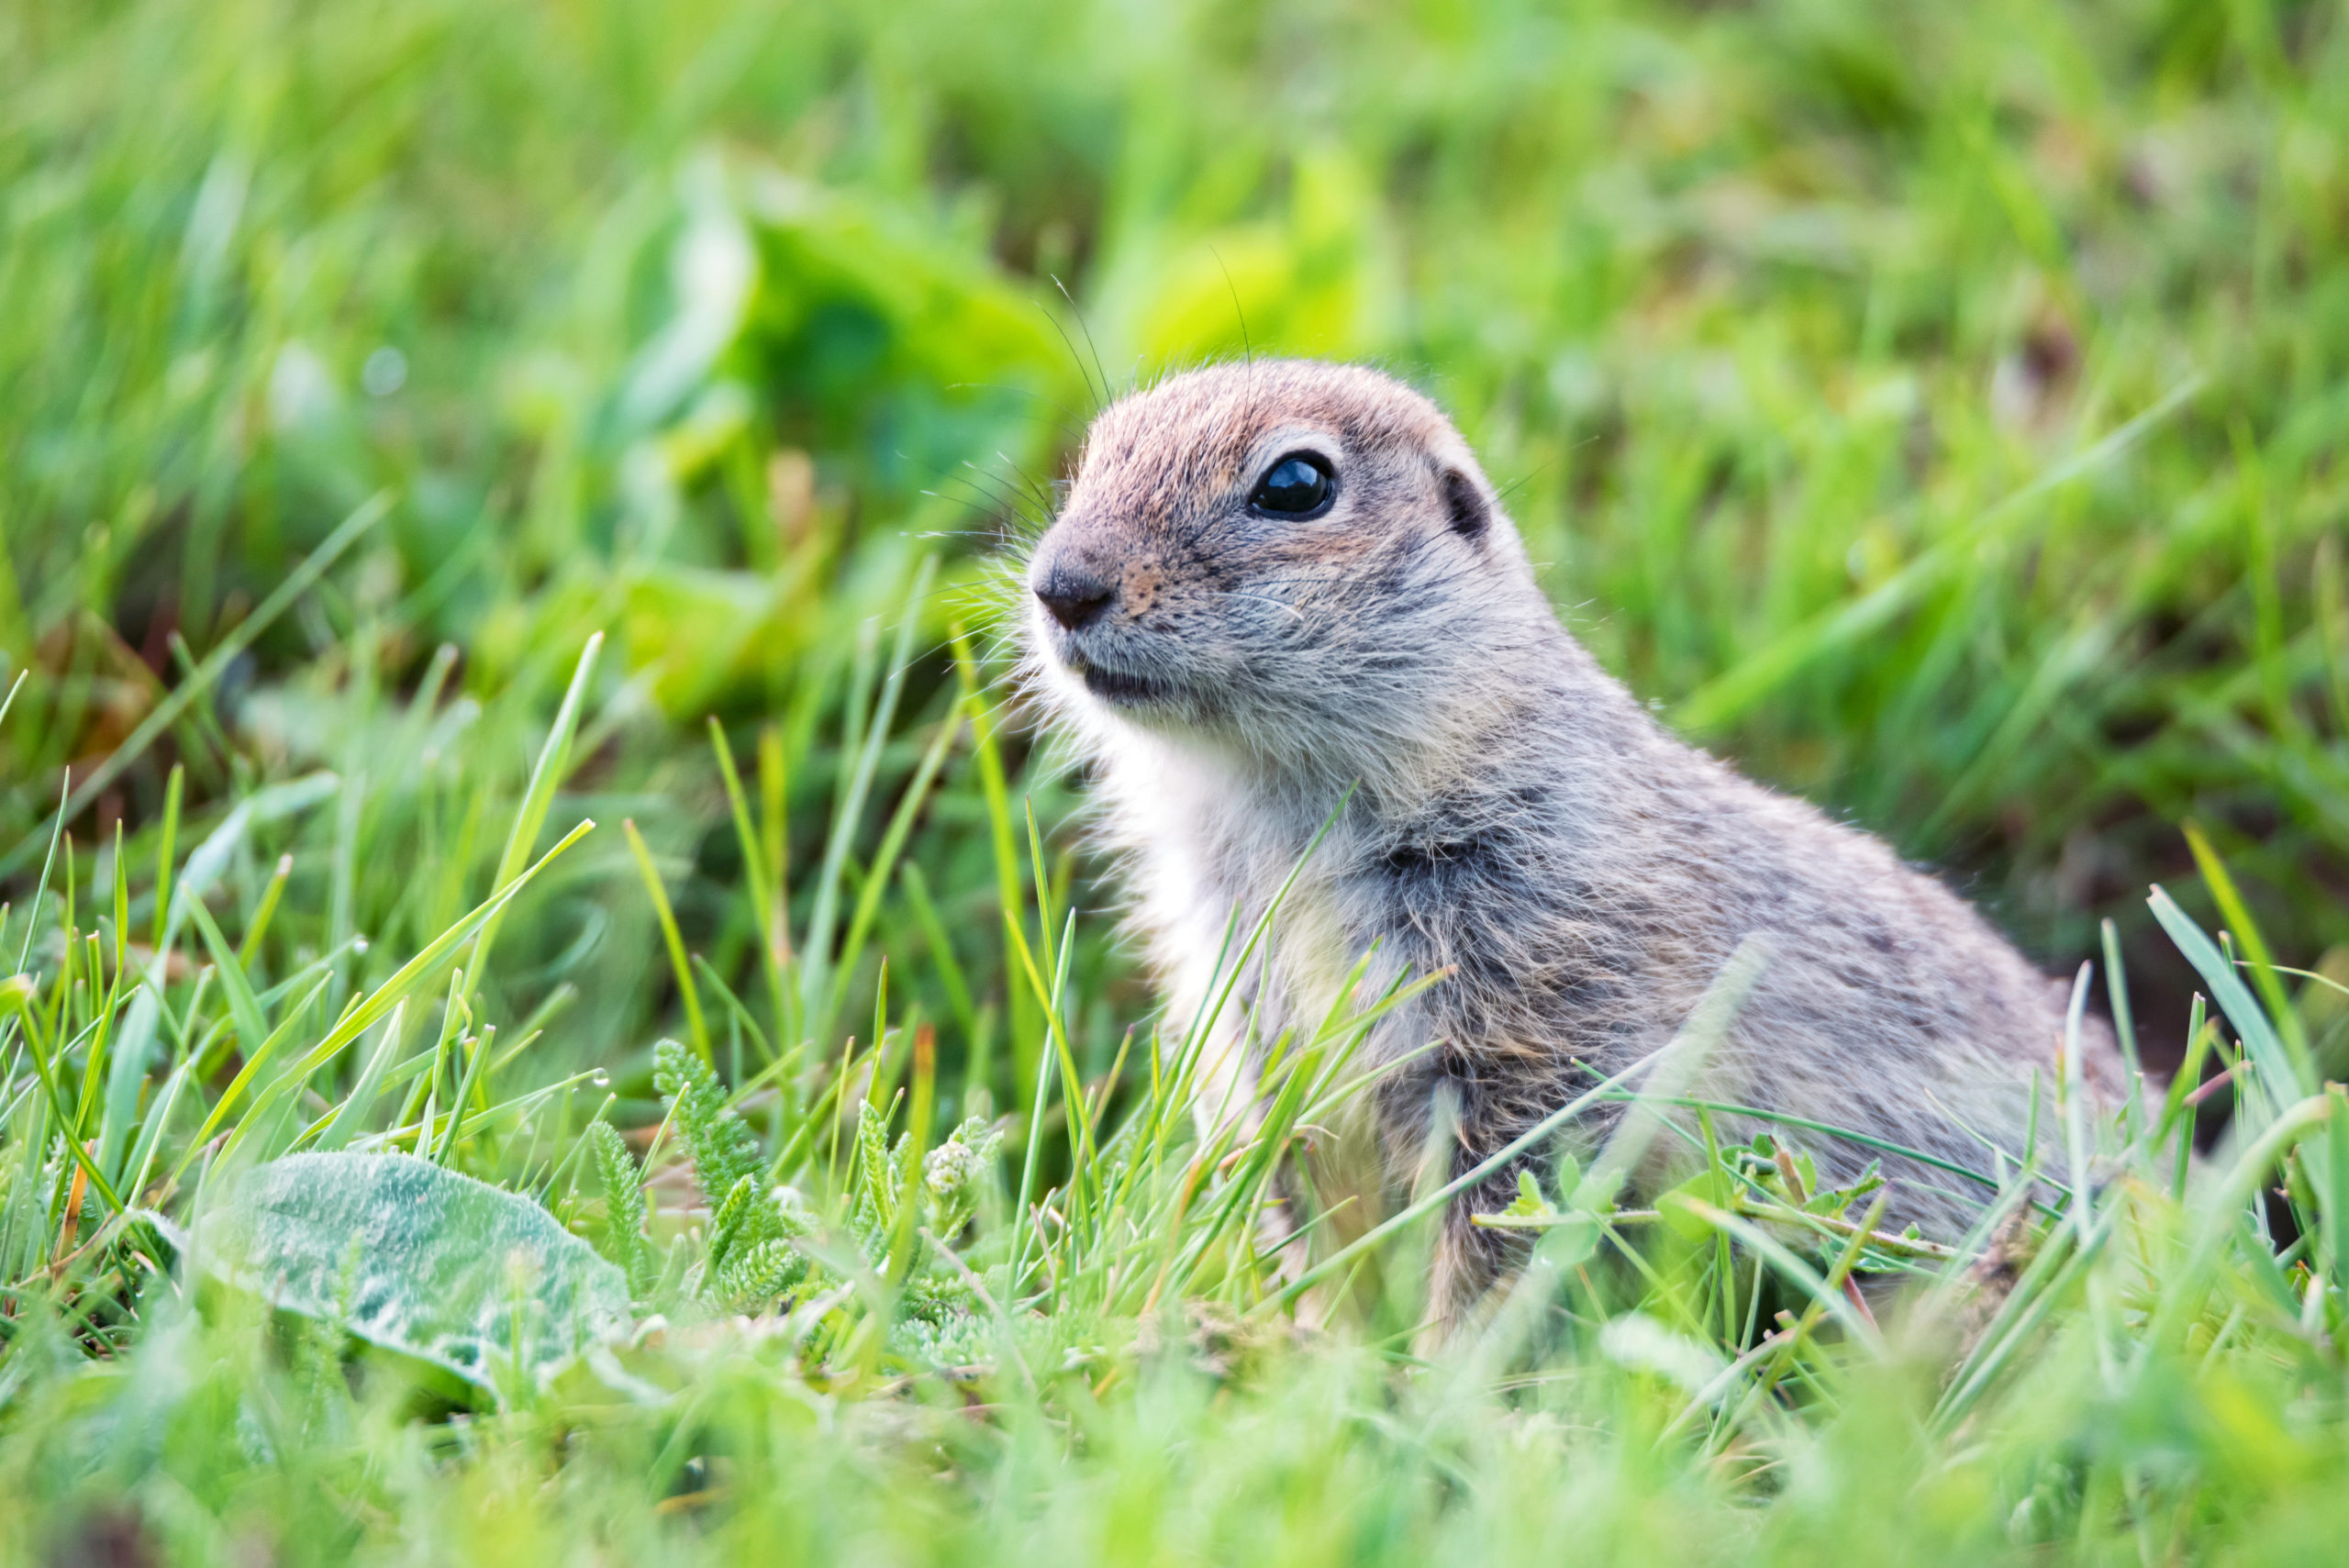 mountain gopher and using biologics to control them